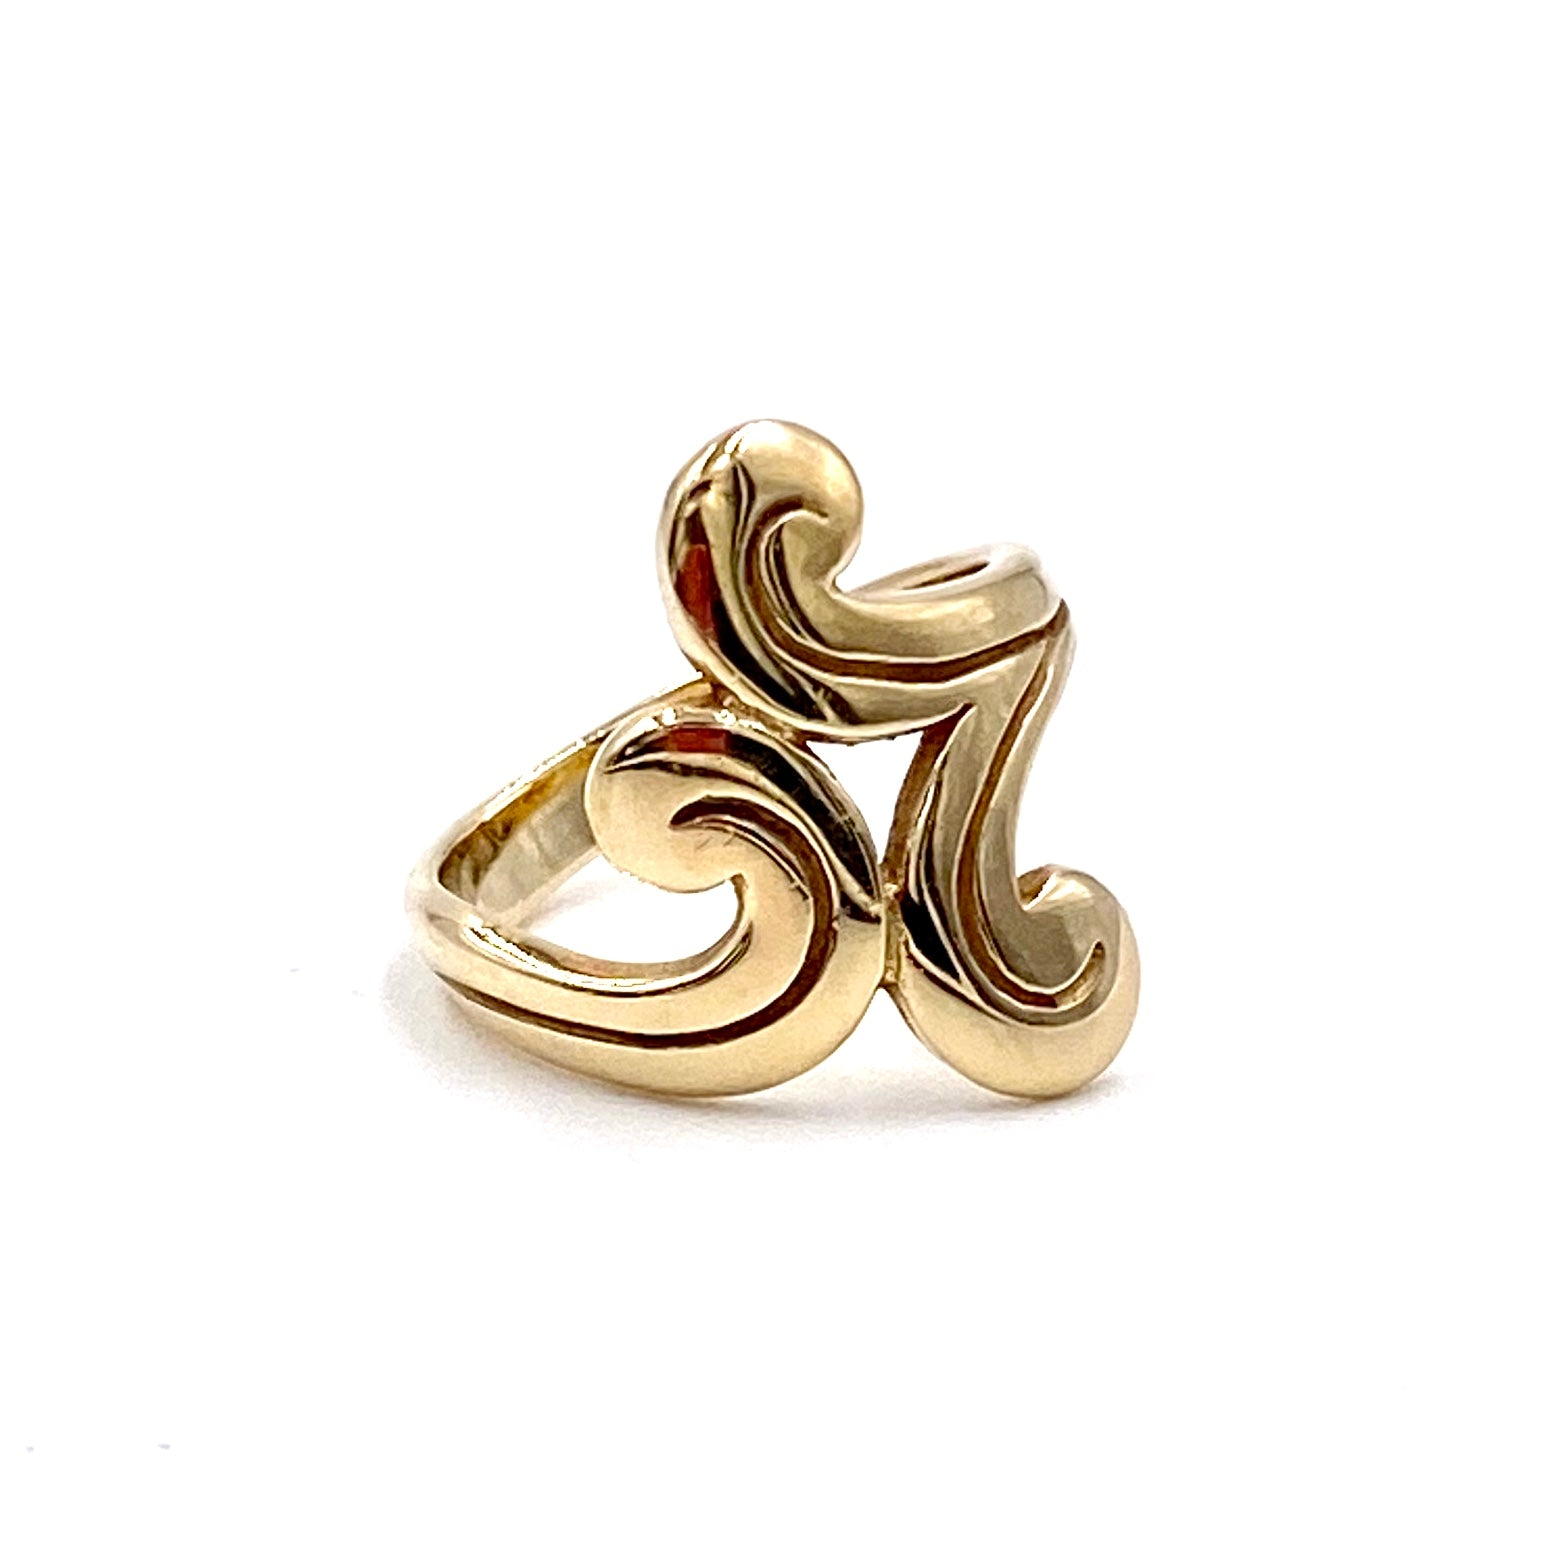 James Avery Retired  Swirl Ring Hallmarked Dynamic Movement 14K Yellow Gold